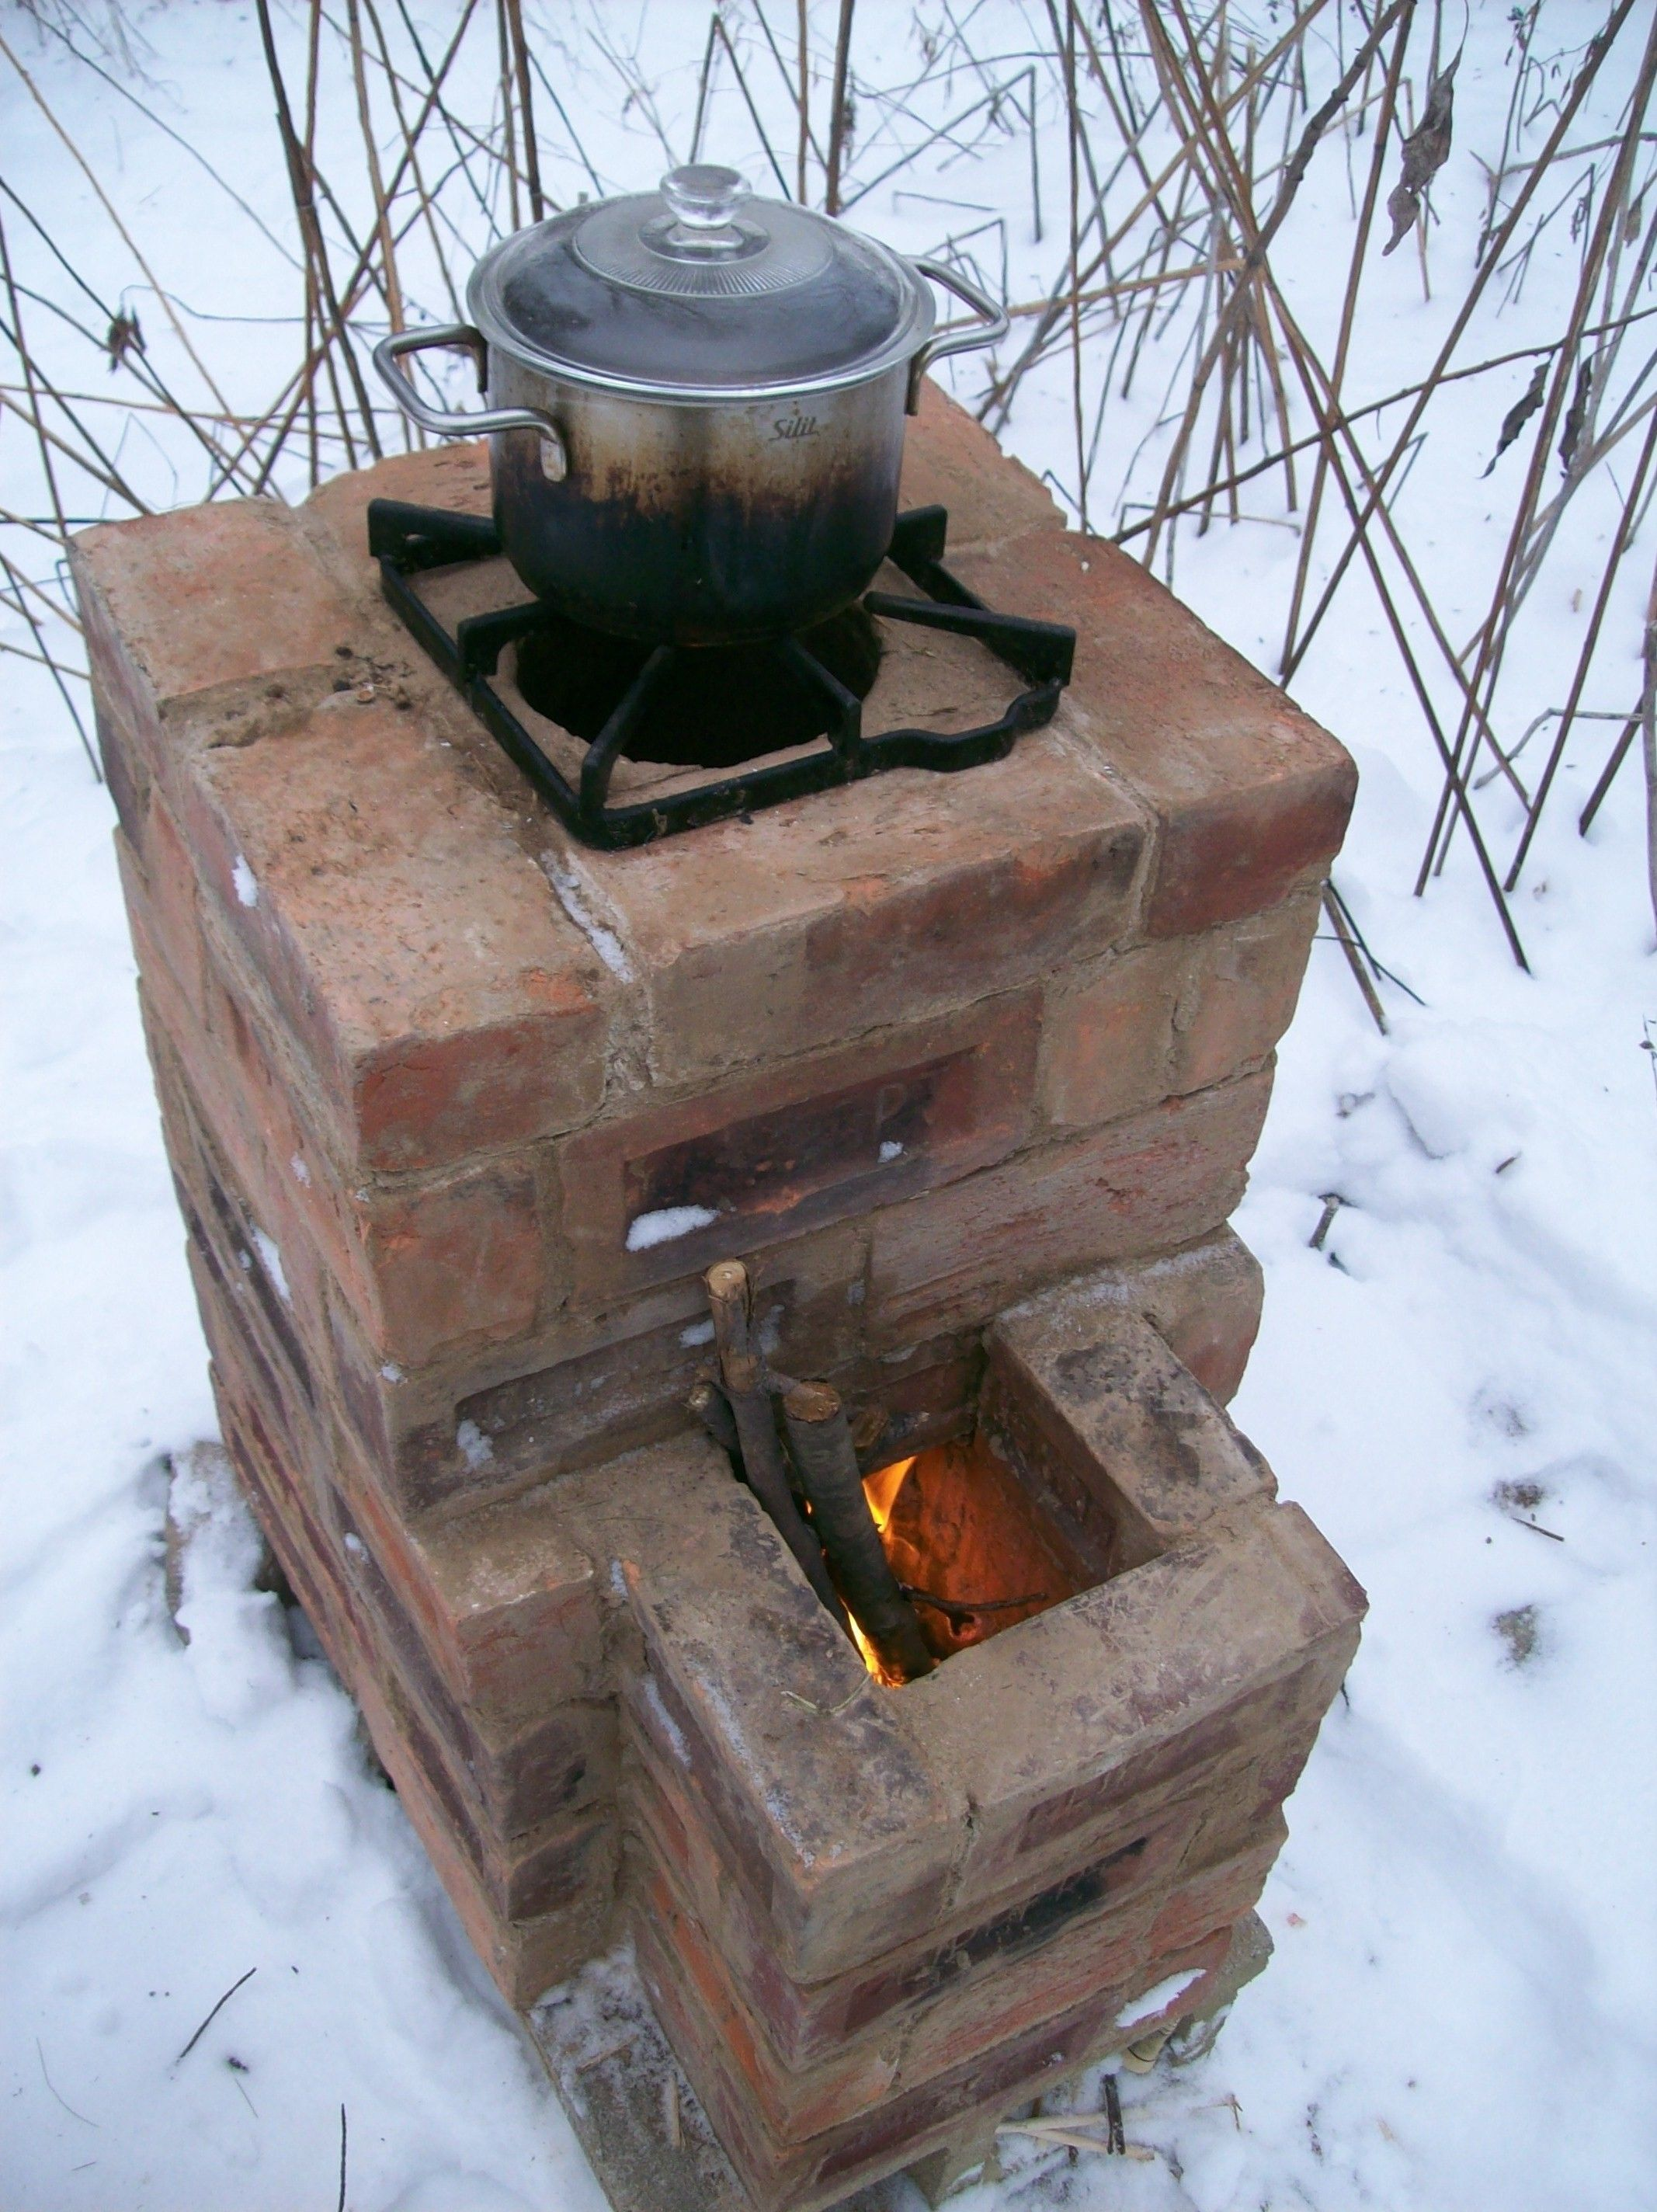 Rocket Stoves & Earth Ovens | Rocket stoves, Stove and Oven